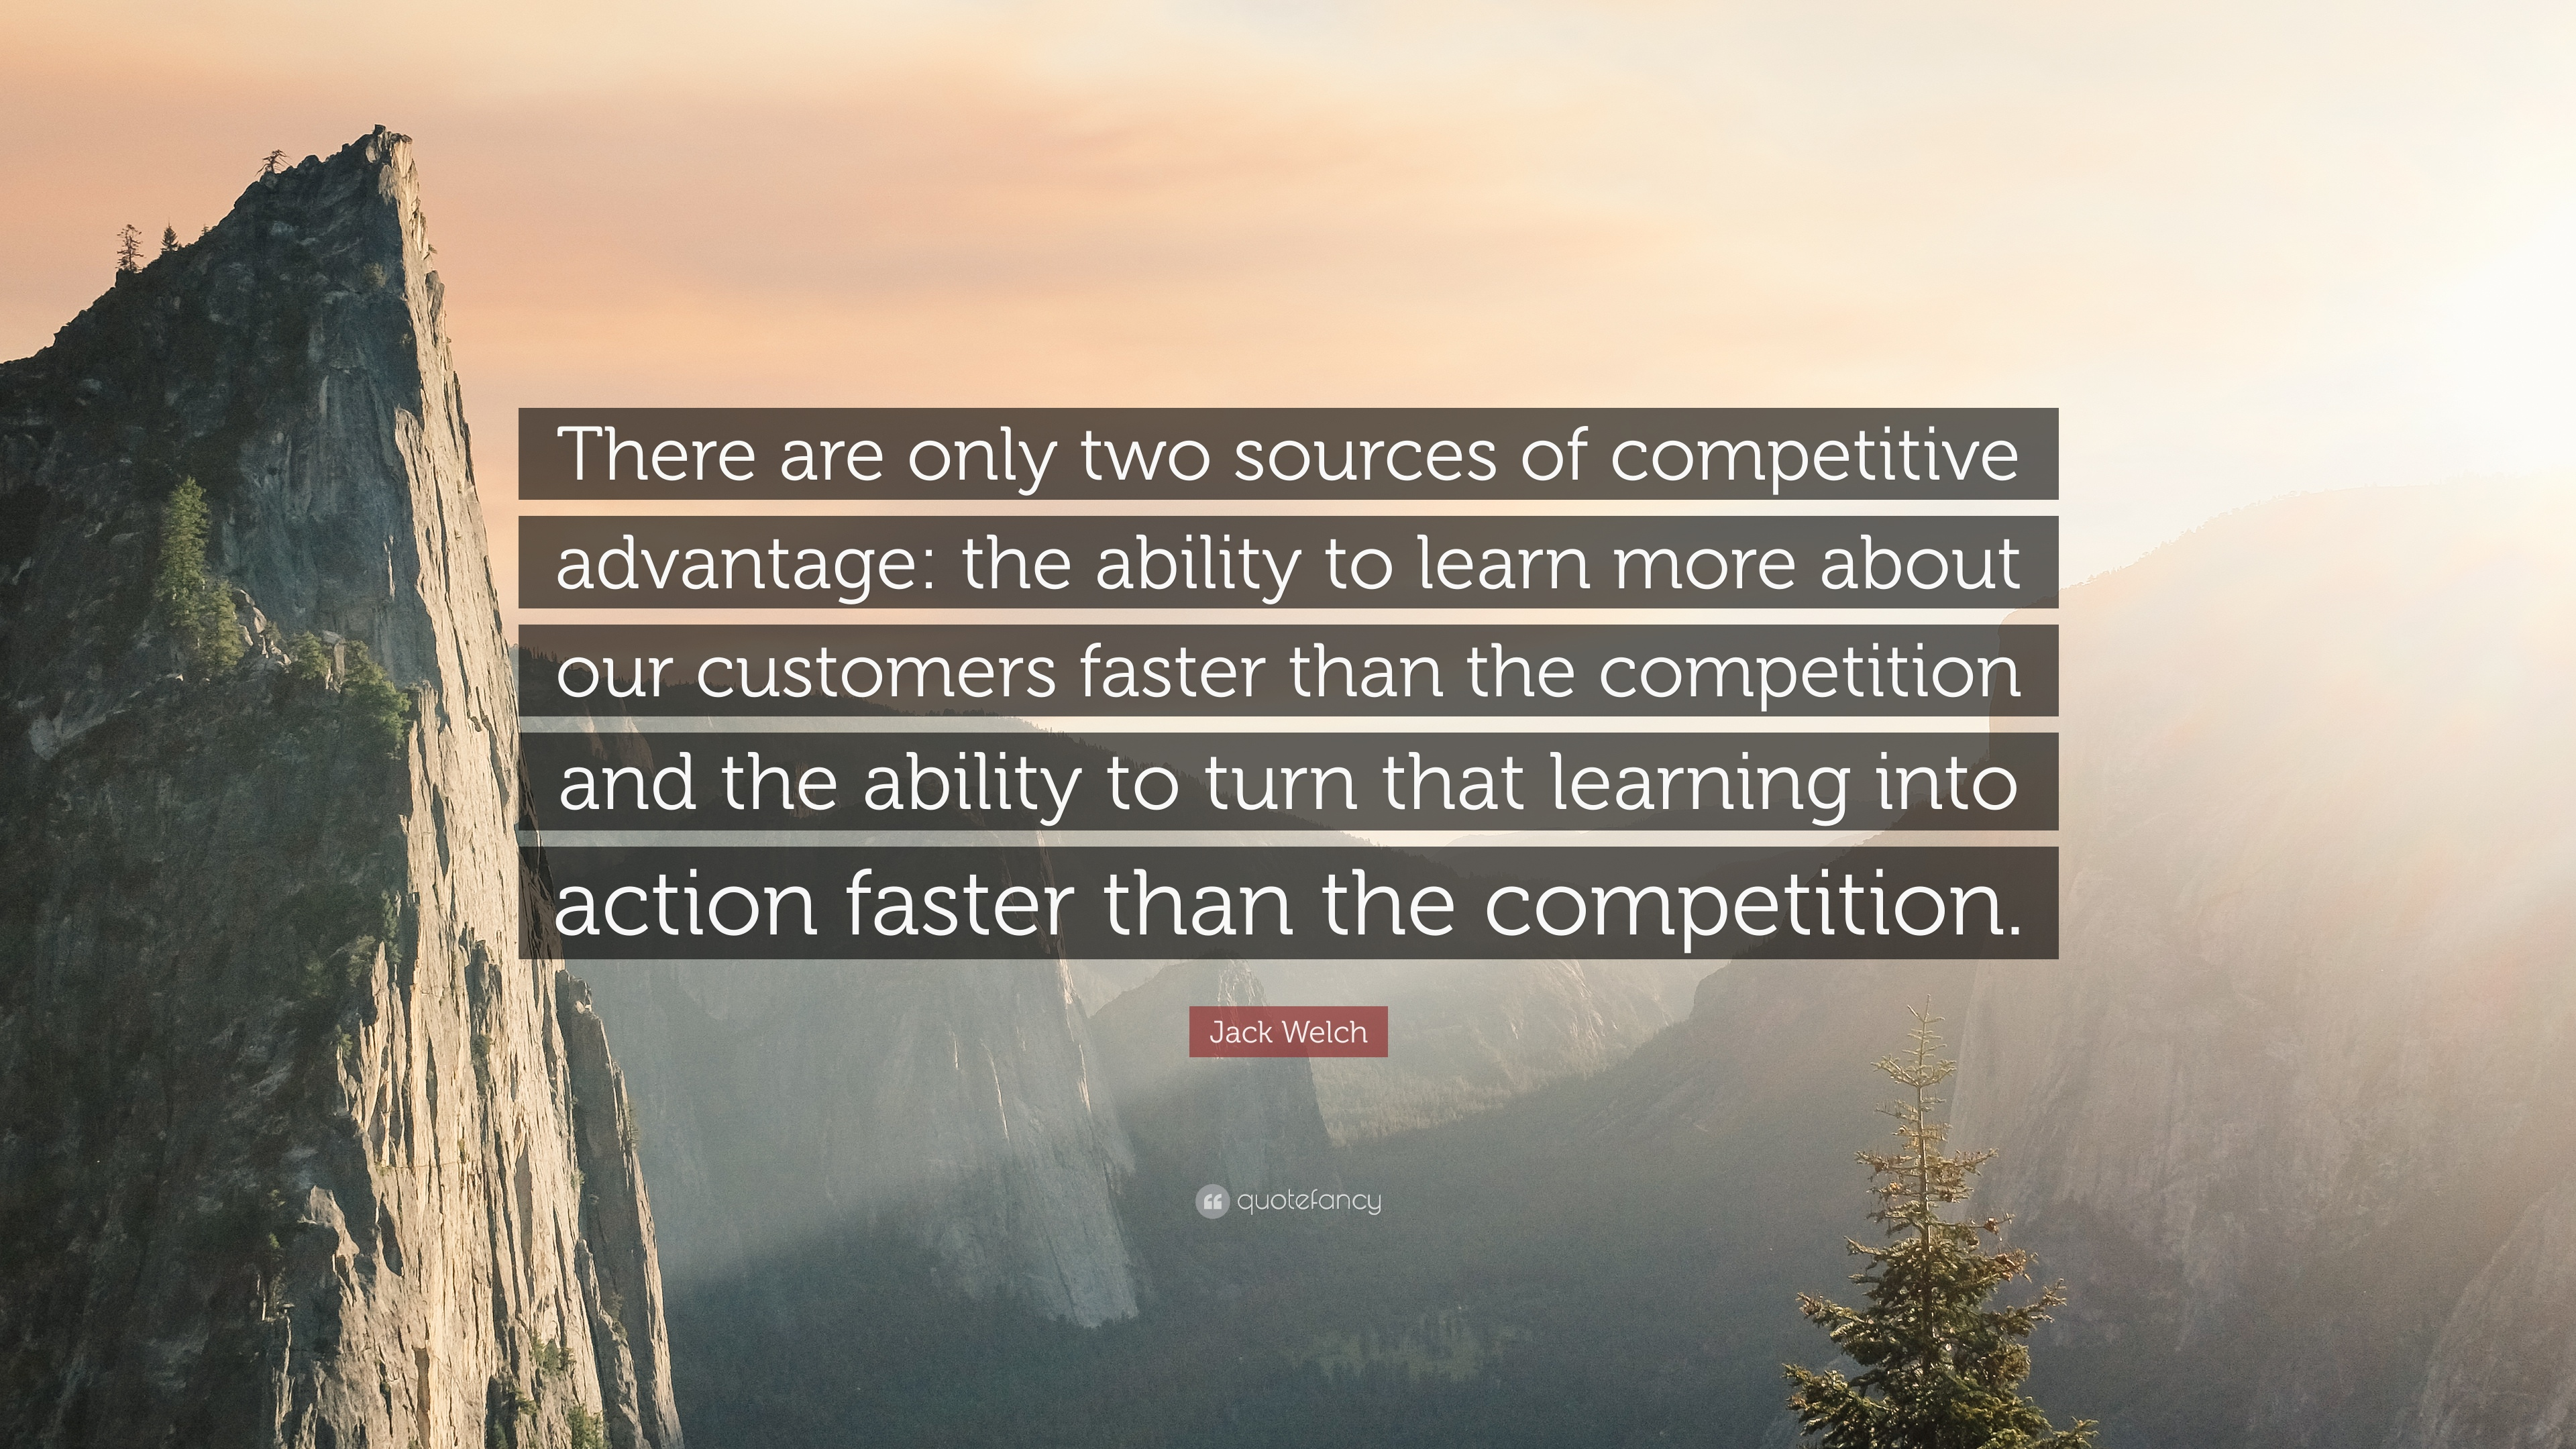 Competition Quotes (40 wallpapers) - Quotefancy